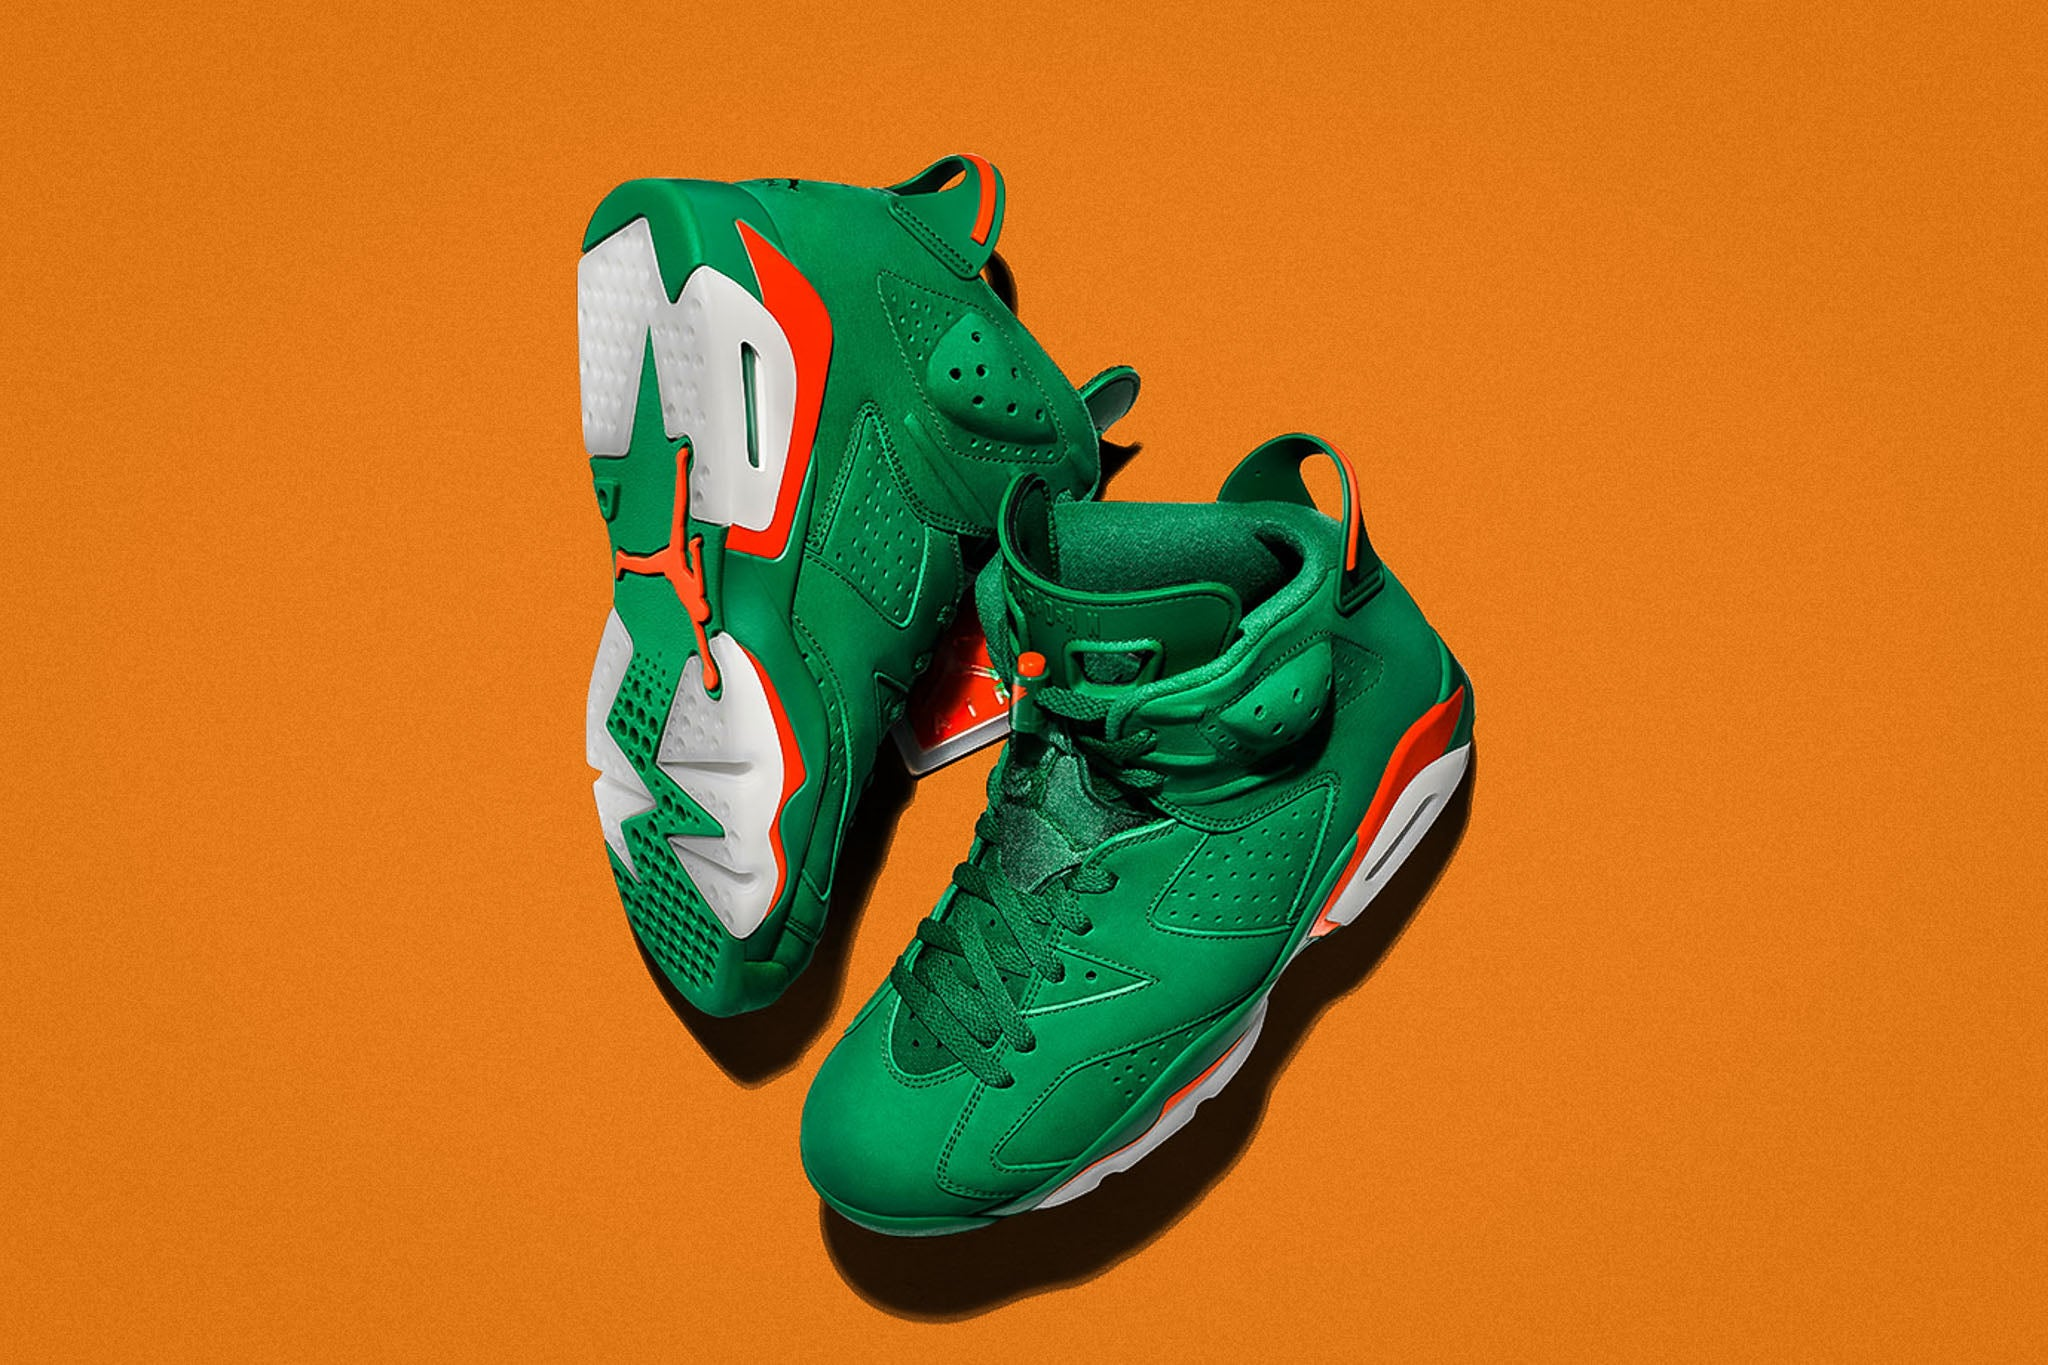 5f8b5037f6c8 Ramping up the releases of Gatorade-themed Jordans is another classic  Jumpman silhouette that goes grinch-like green with a supple suede  treatment. The Air ...